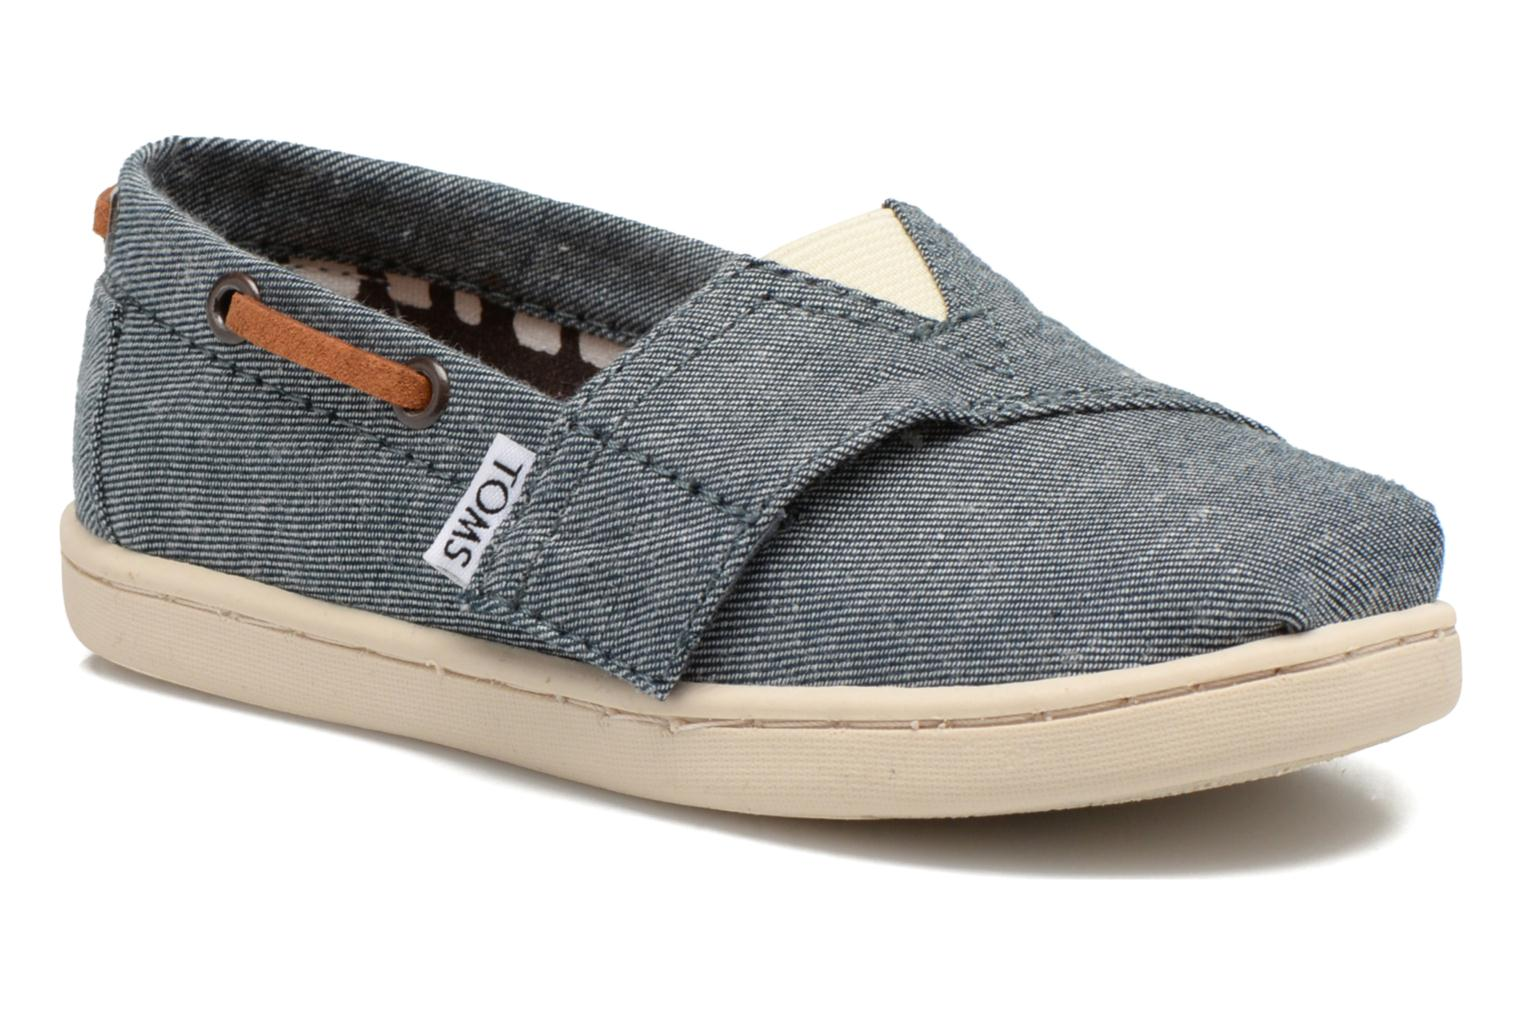 Sneakers Bimini Espadrille by TOMS